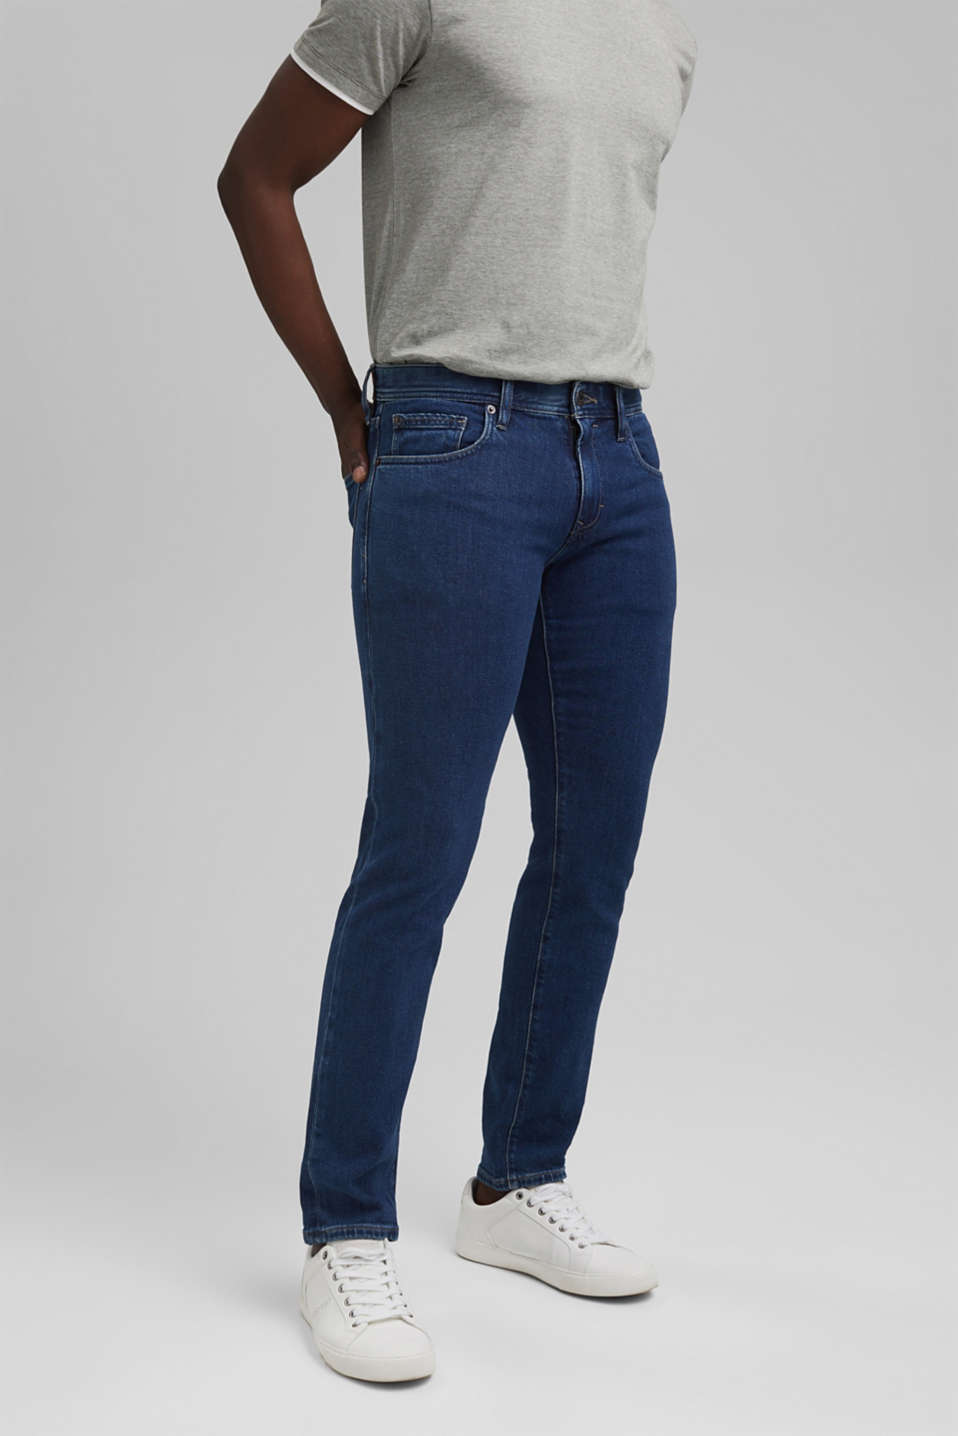 Esprit - Stretch jeans made of lyocell and organic cotton